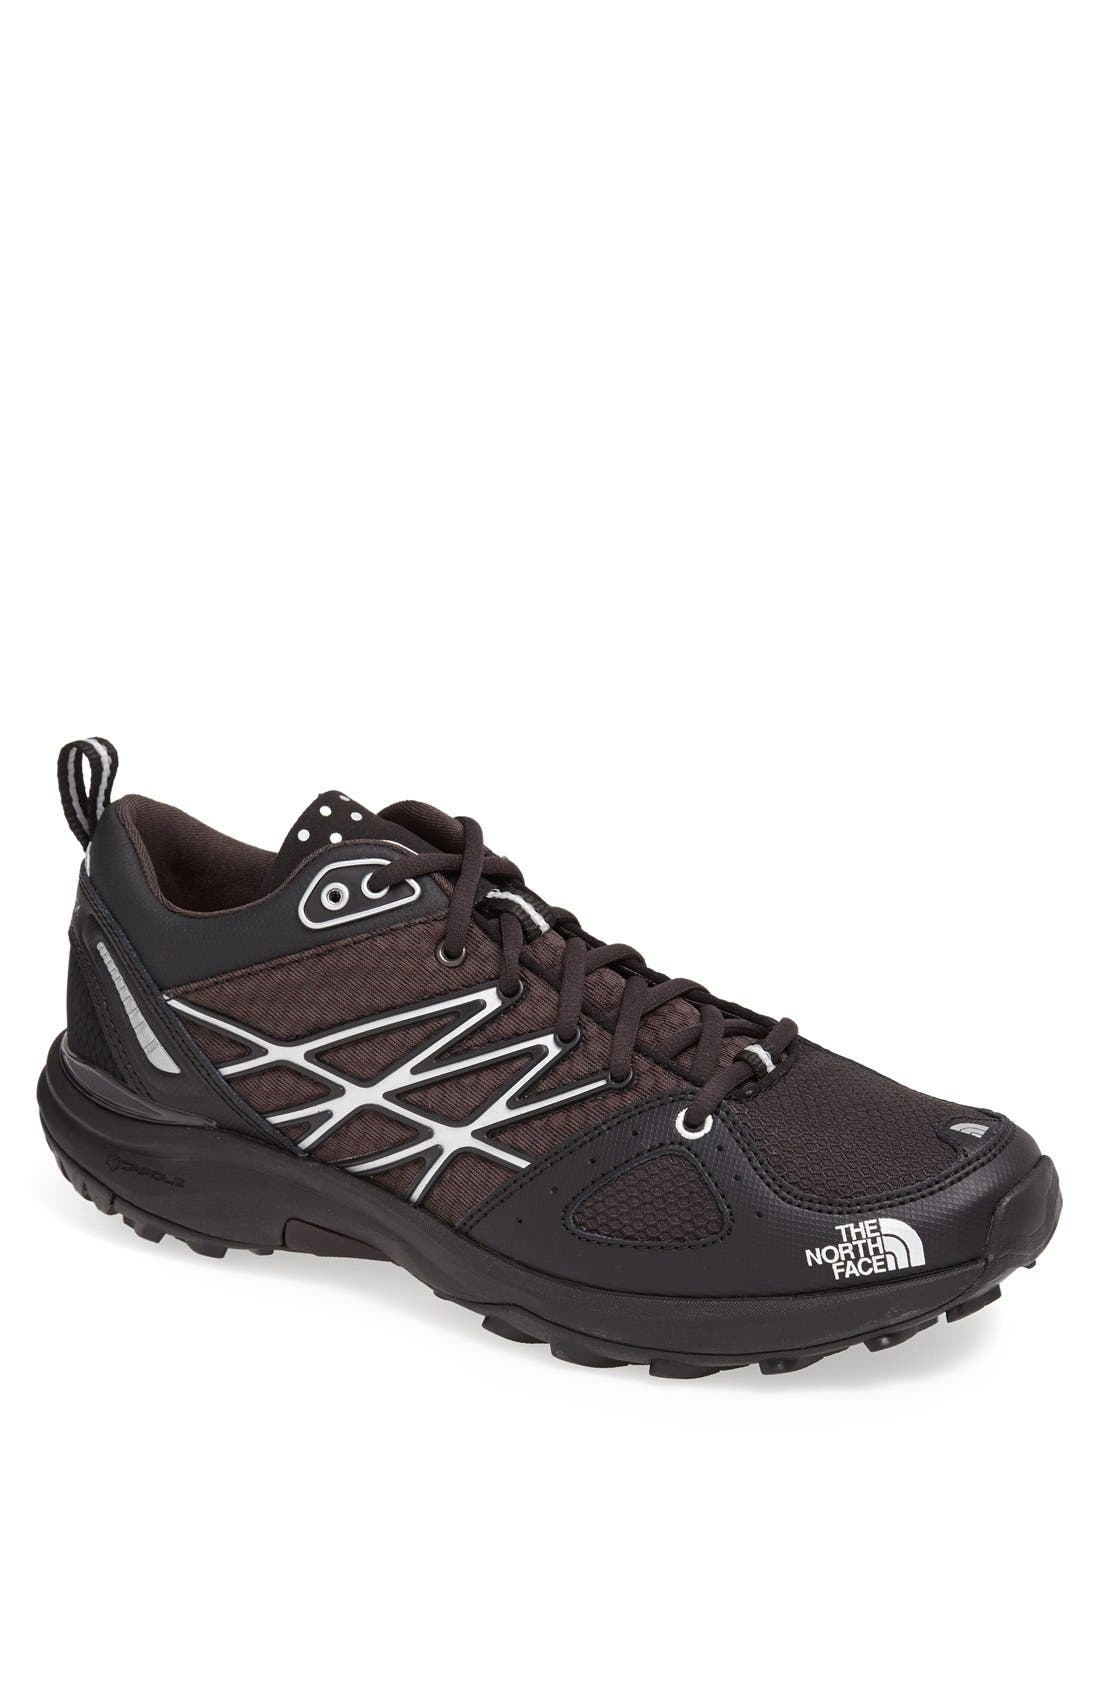 Main Image - The North Face 'Ultra Fastpack' Hiking Shoe (Men)